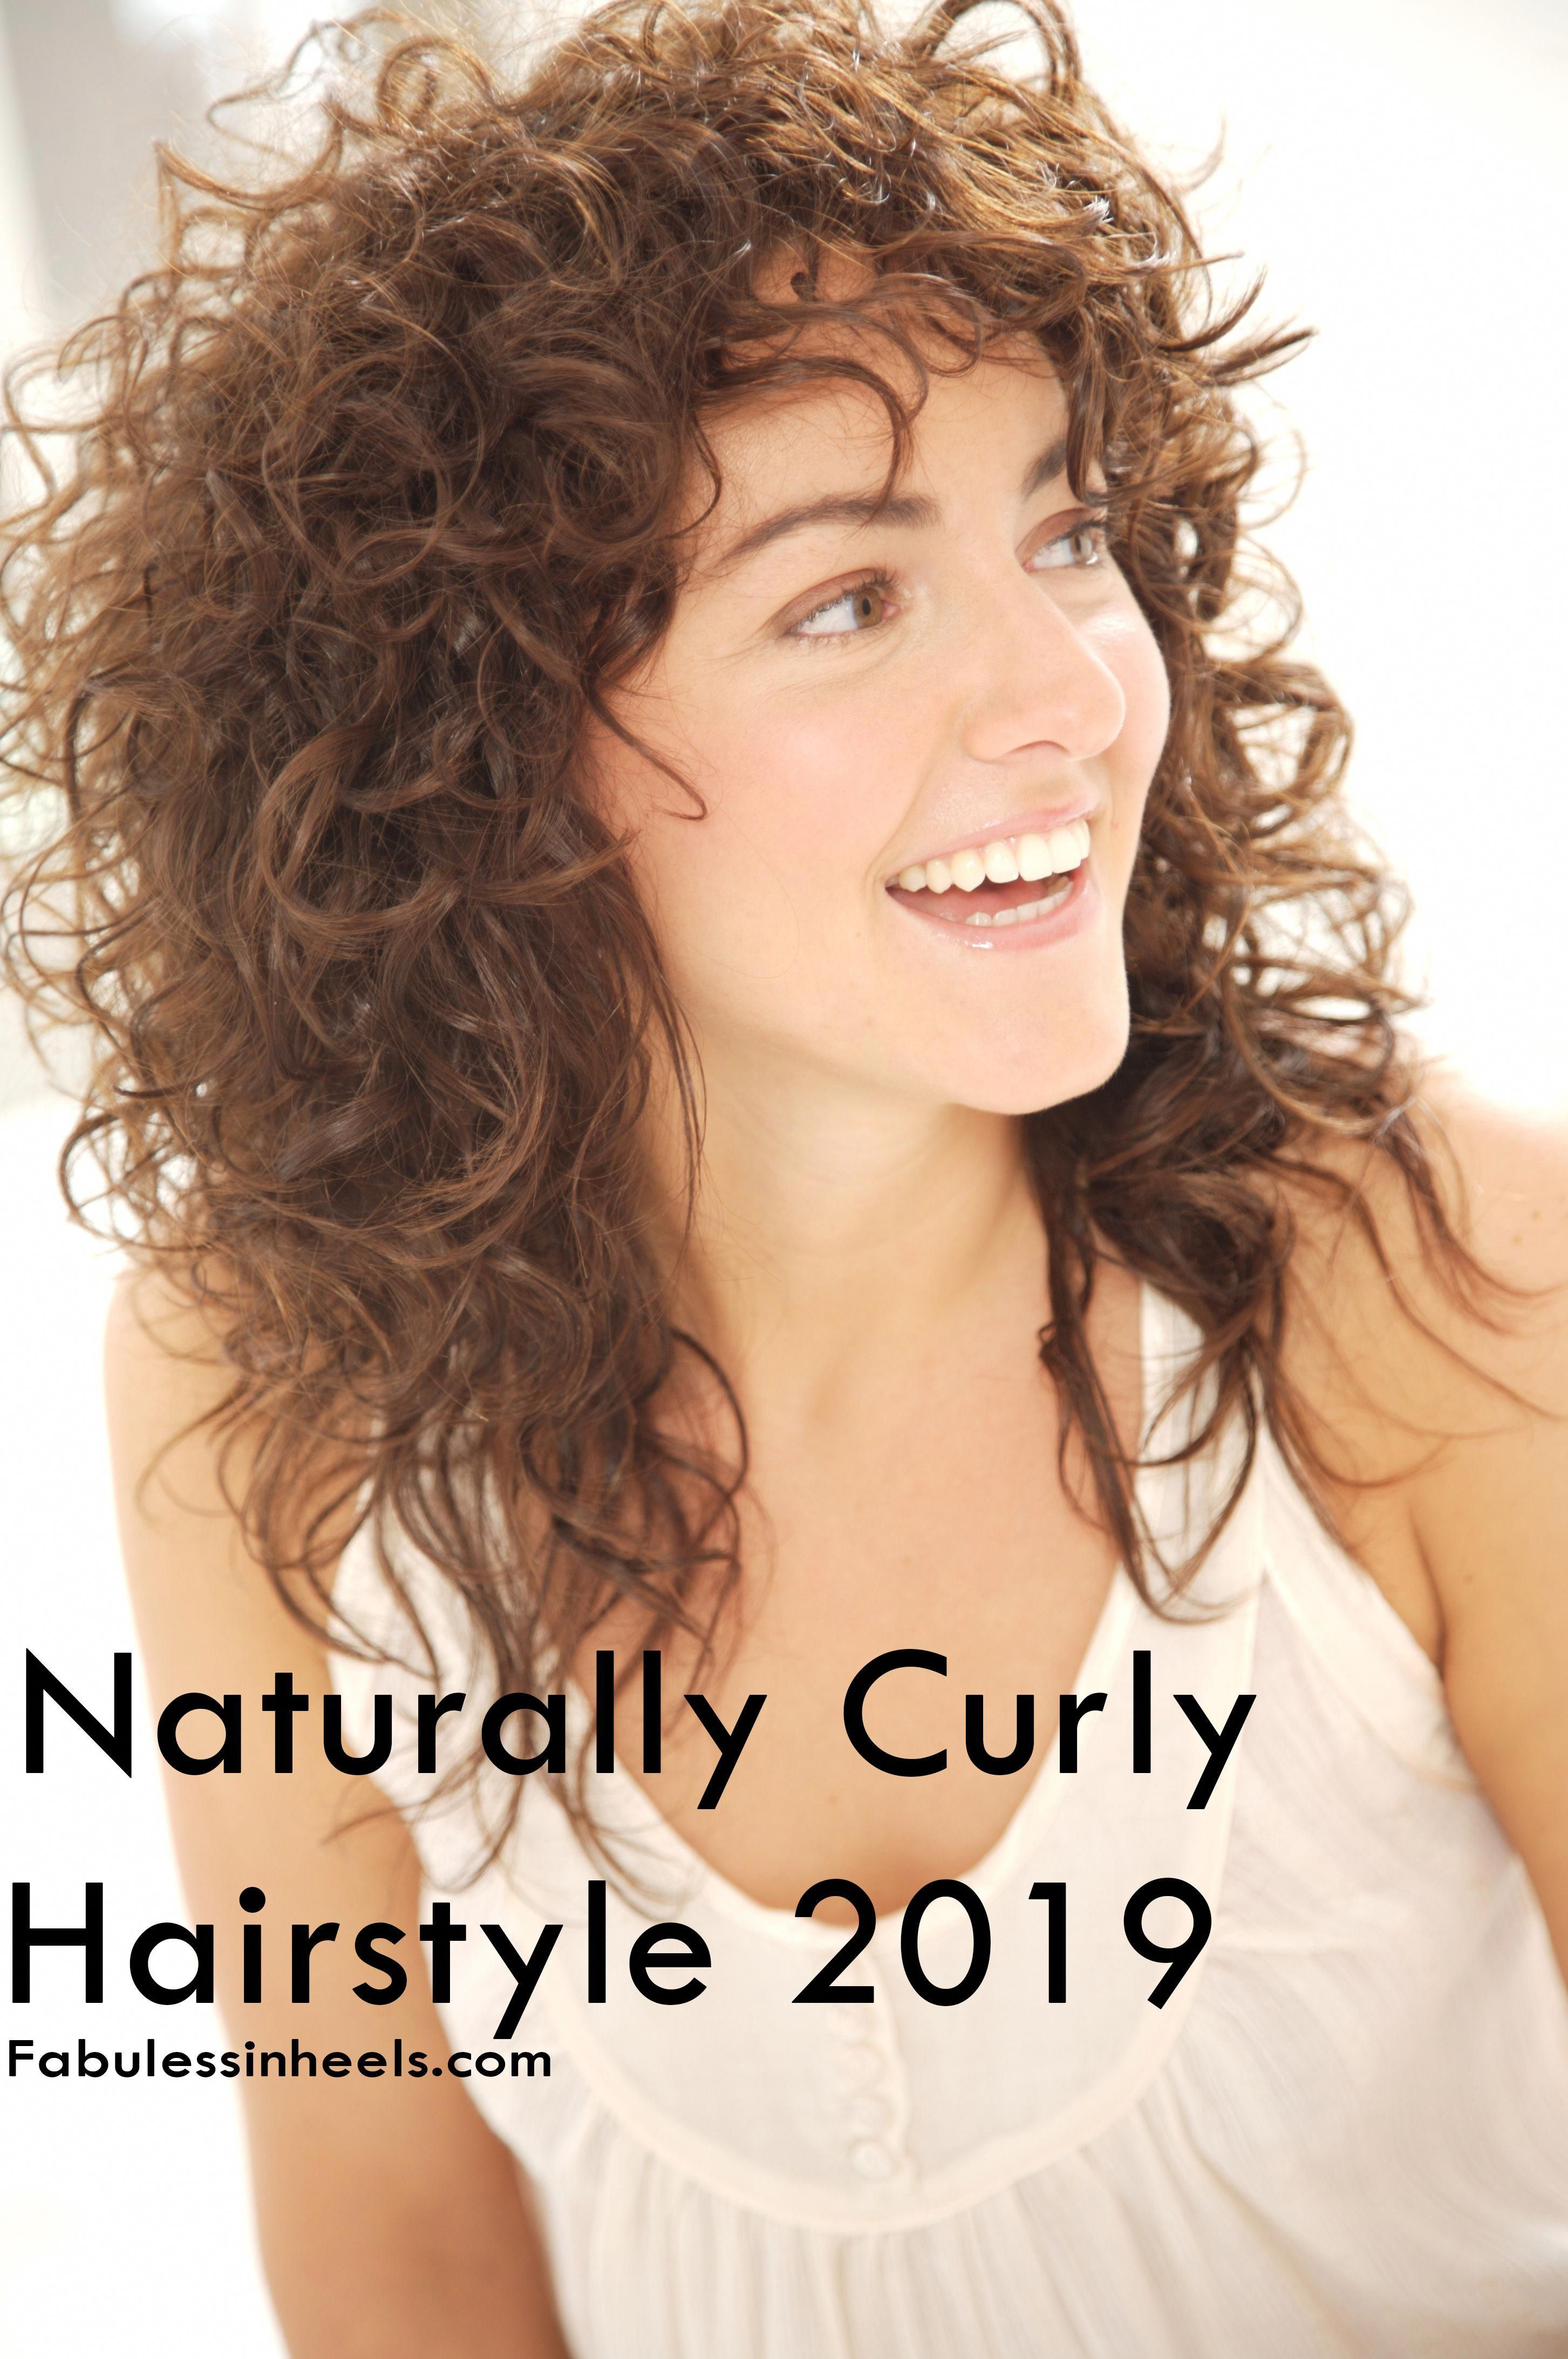 90 easy hairstyles for naturally curly hair   Curly hair ...